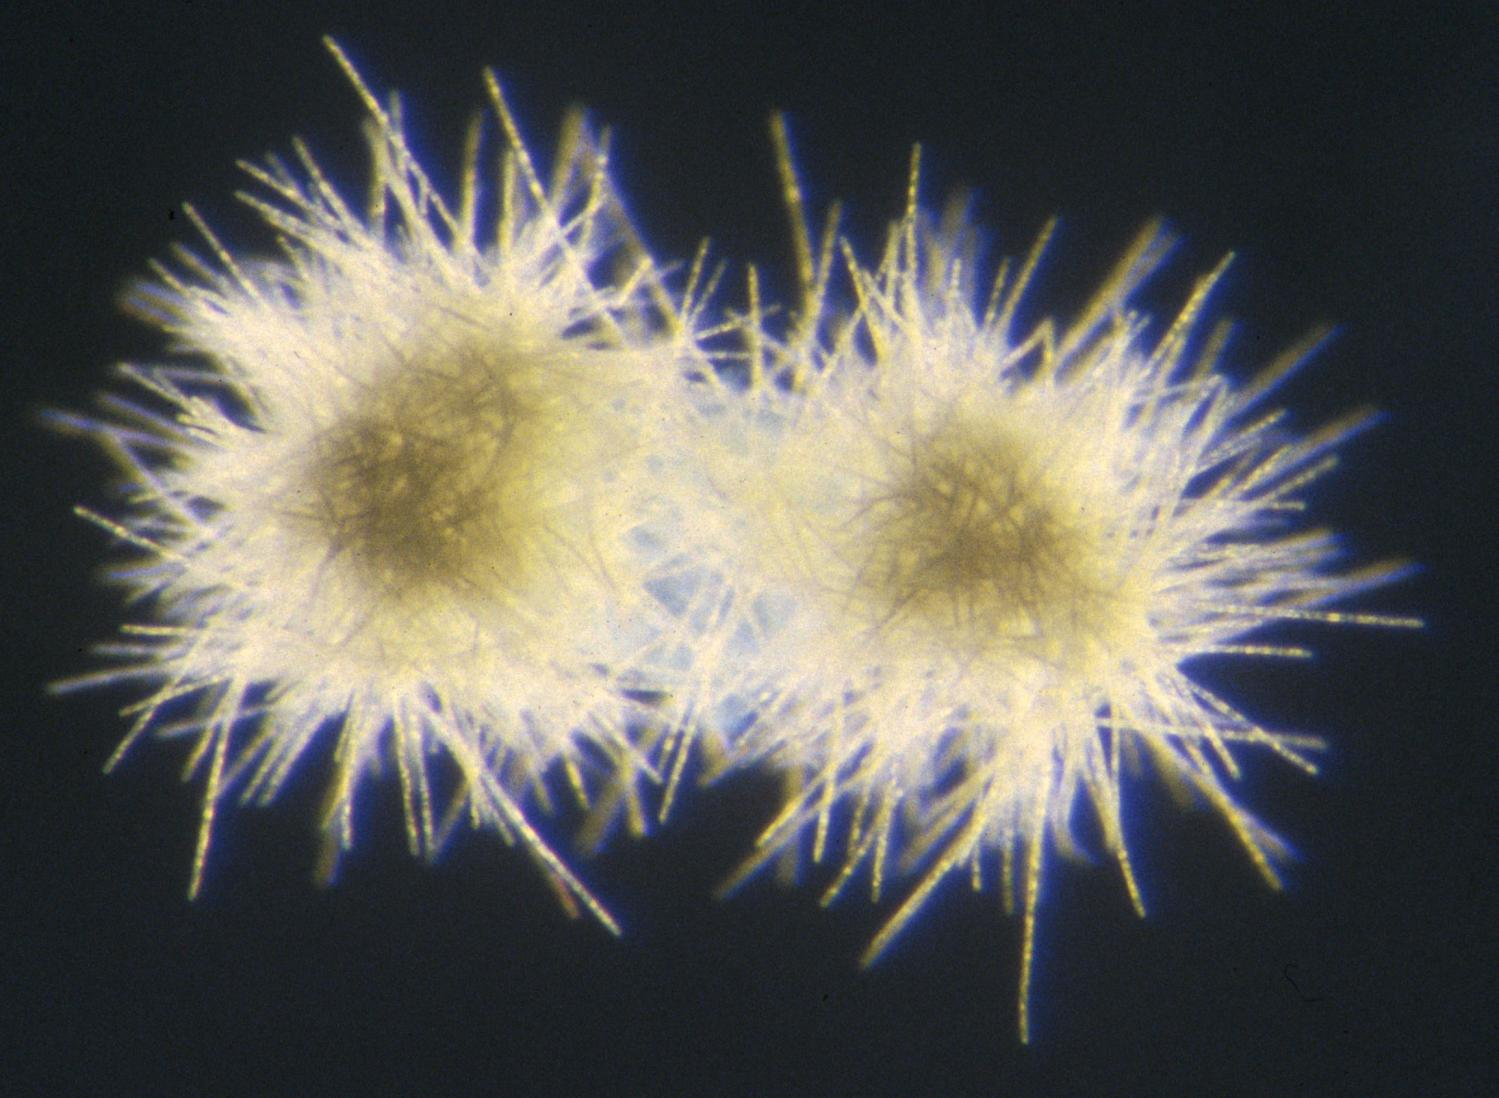 Fixin' to lose: Trichodesmium reacts to climate change